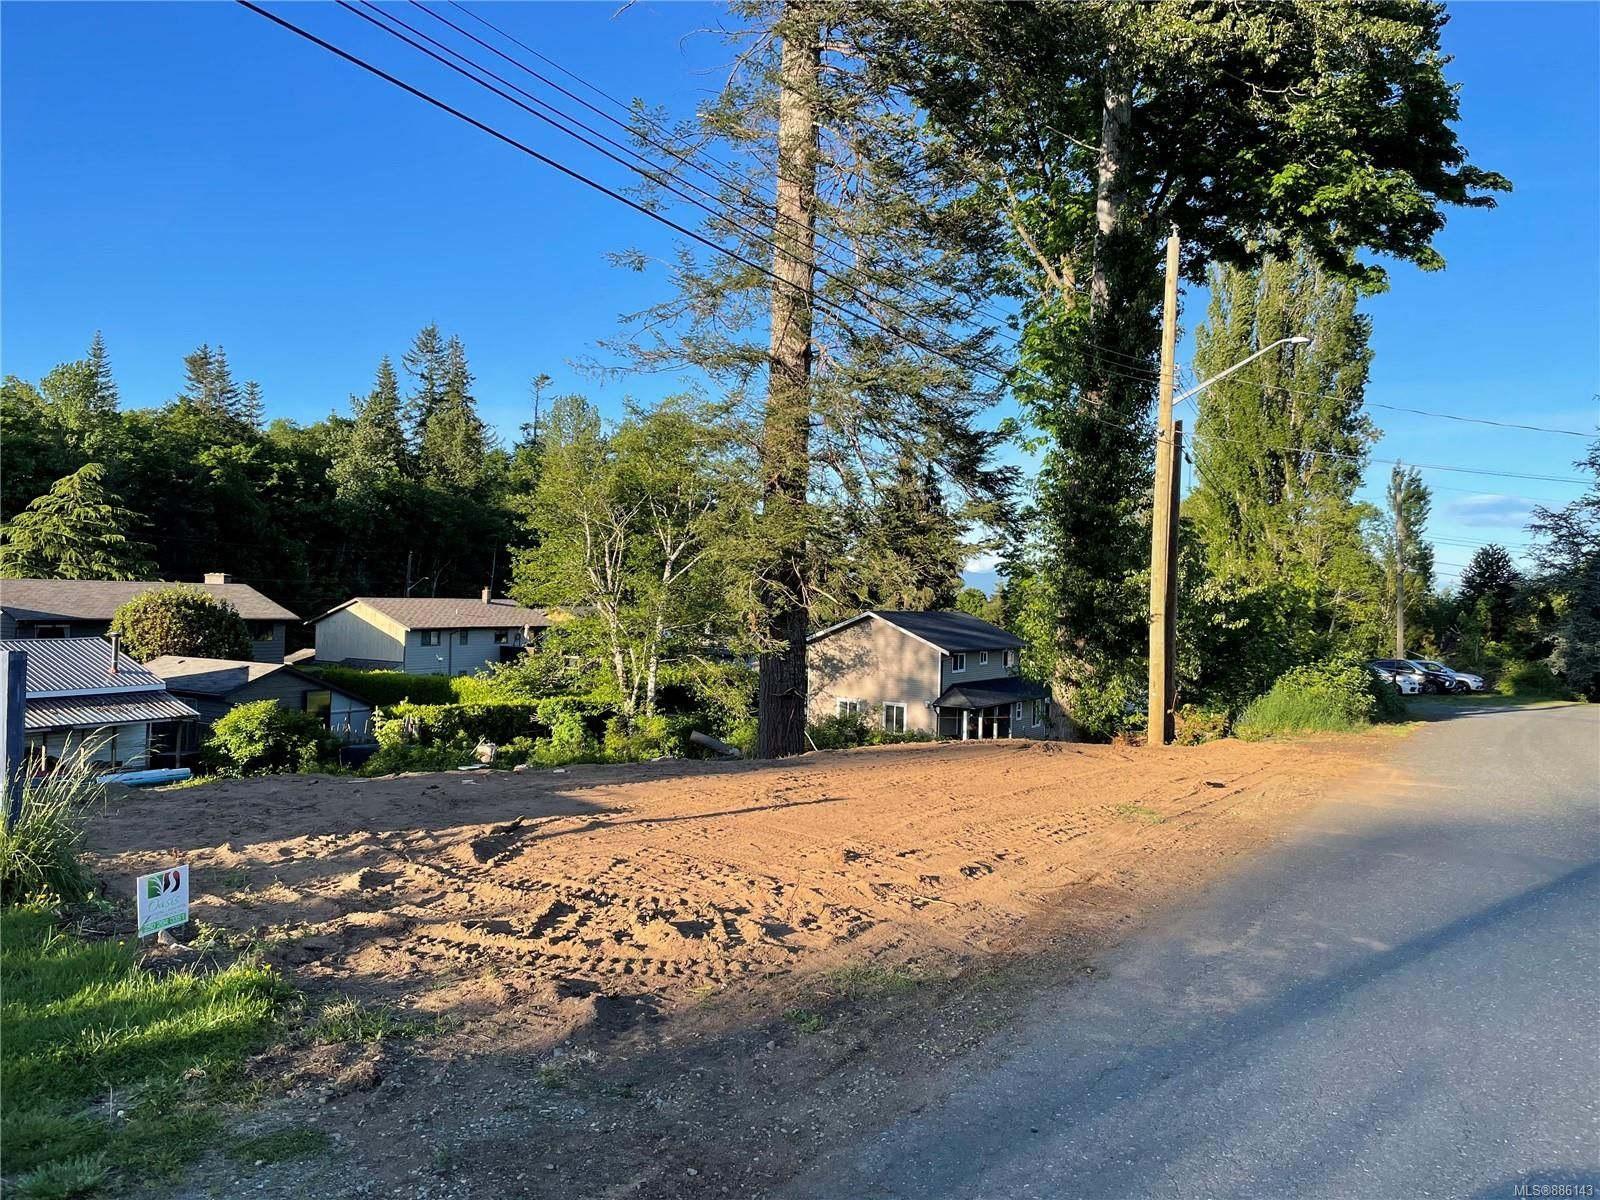 Main Photo: Lot 9 Skipton Cres in : CR Campbell River South Land for sale (Campbell River)  : MLS®# 886143